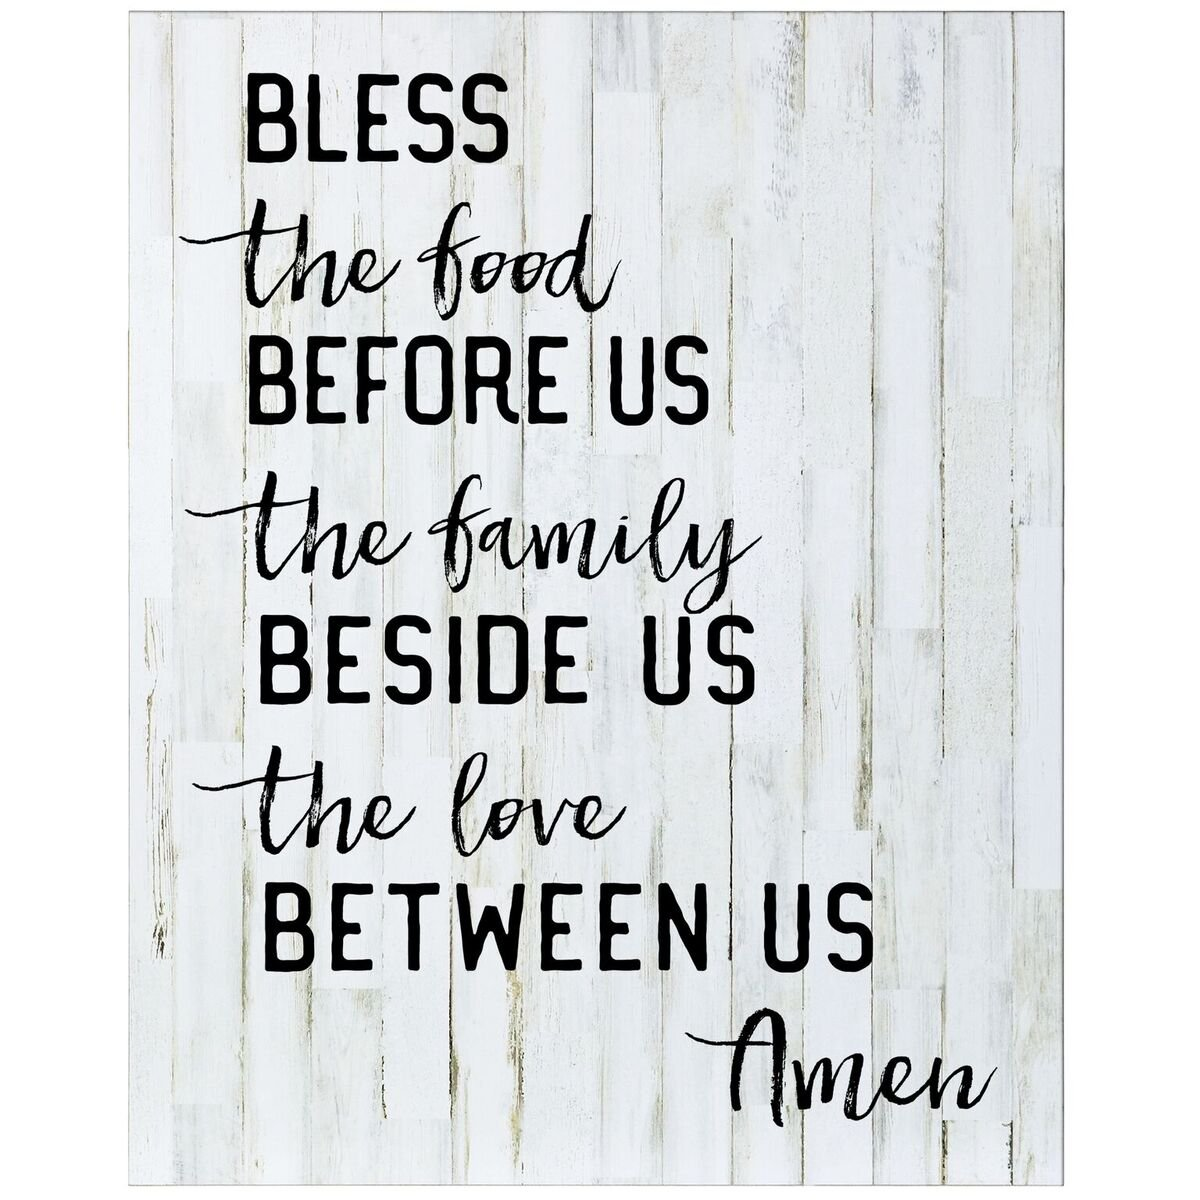 Bless the food before Us Wall art decor print Sign for livingroom entryway kitchen bedroom By Dayspring Milestones (Bless the food) by Dayspring